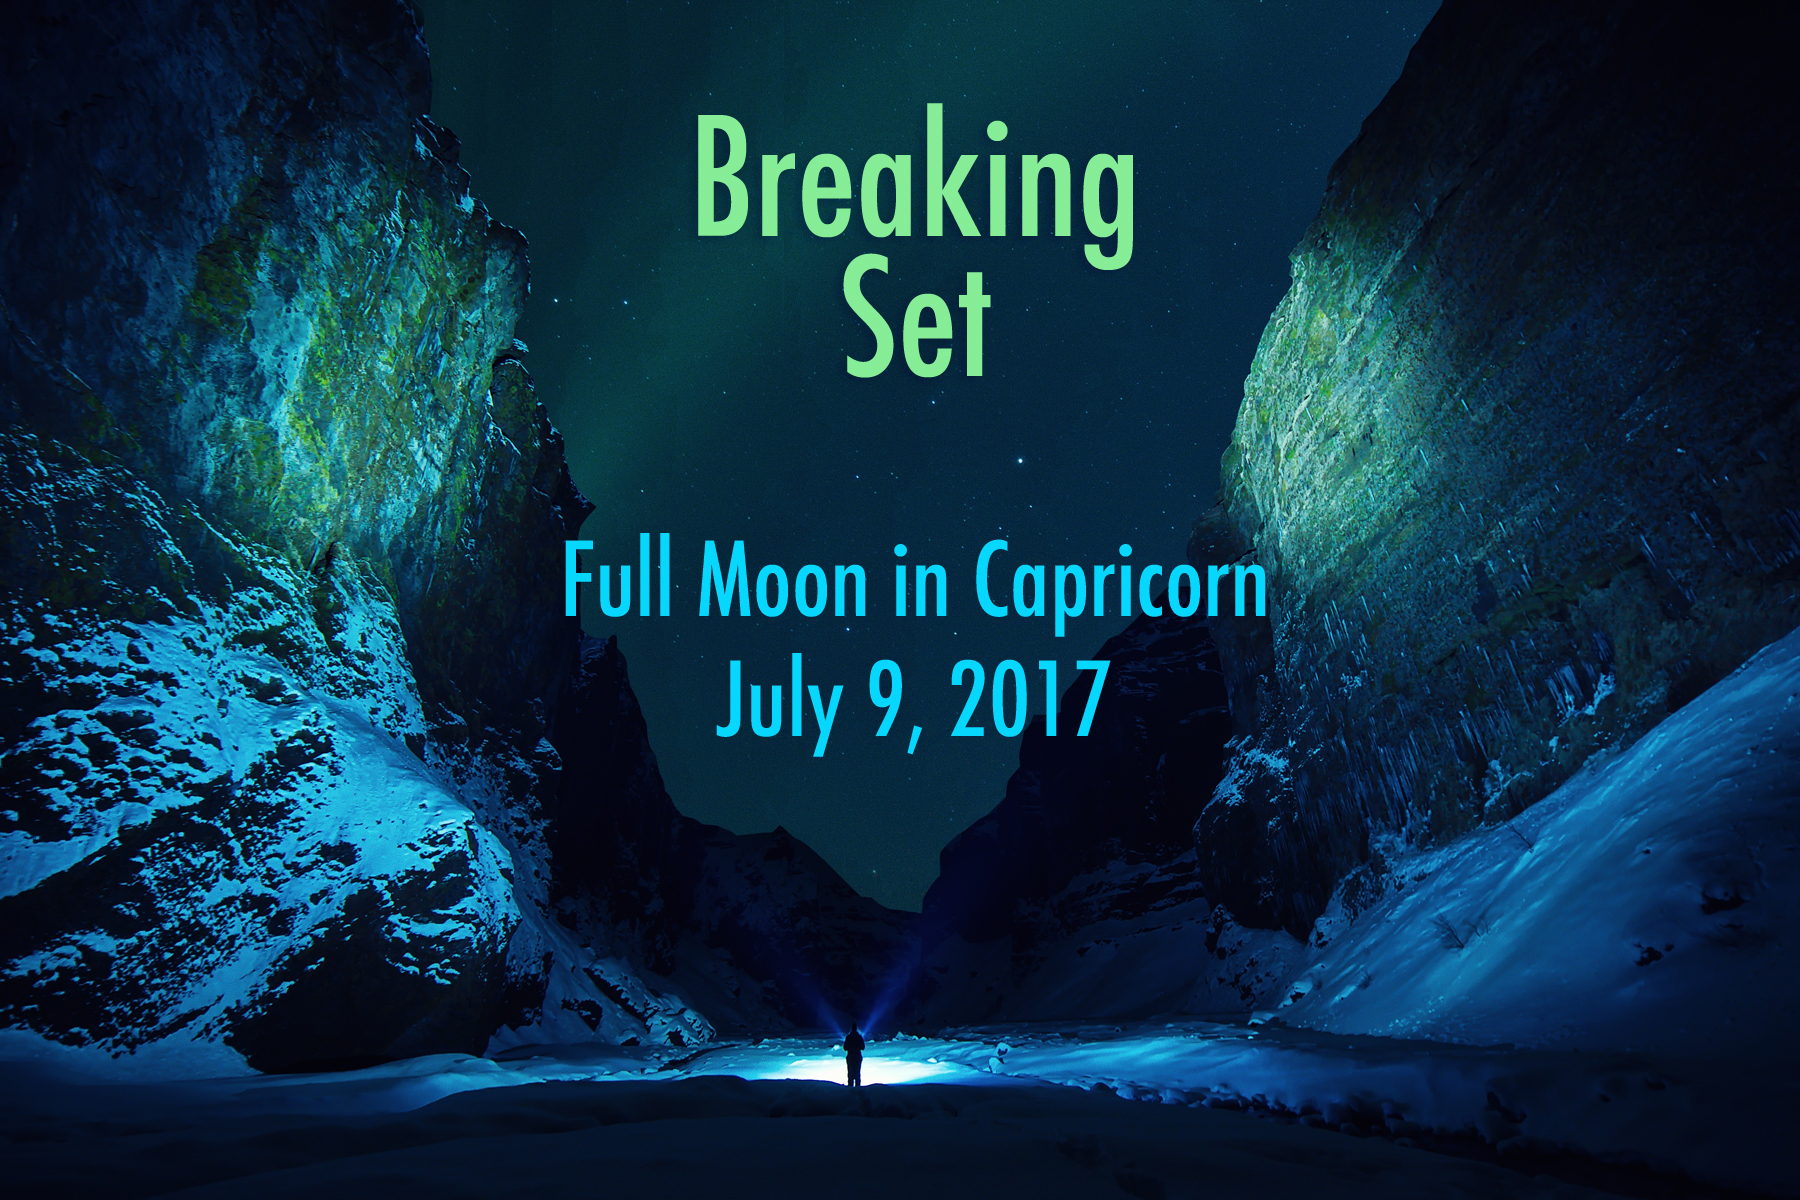 Full Moon in Capricorn: Breaking Set